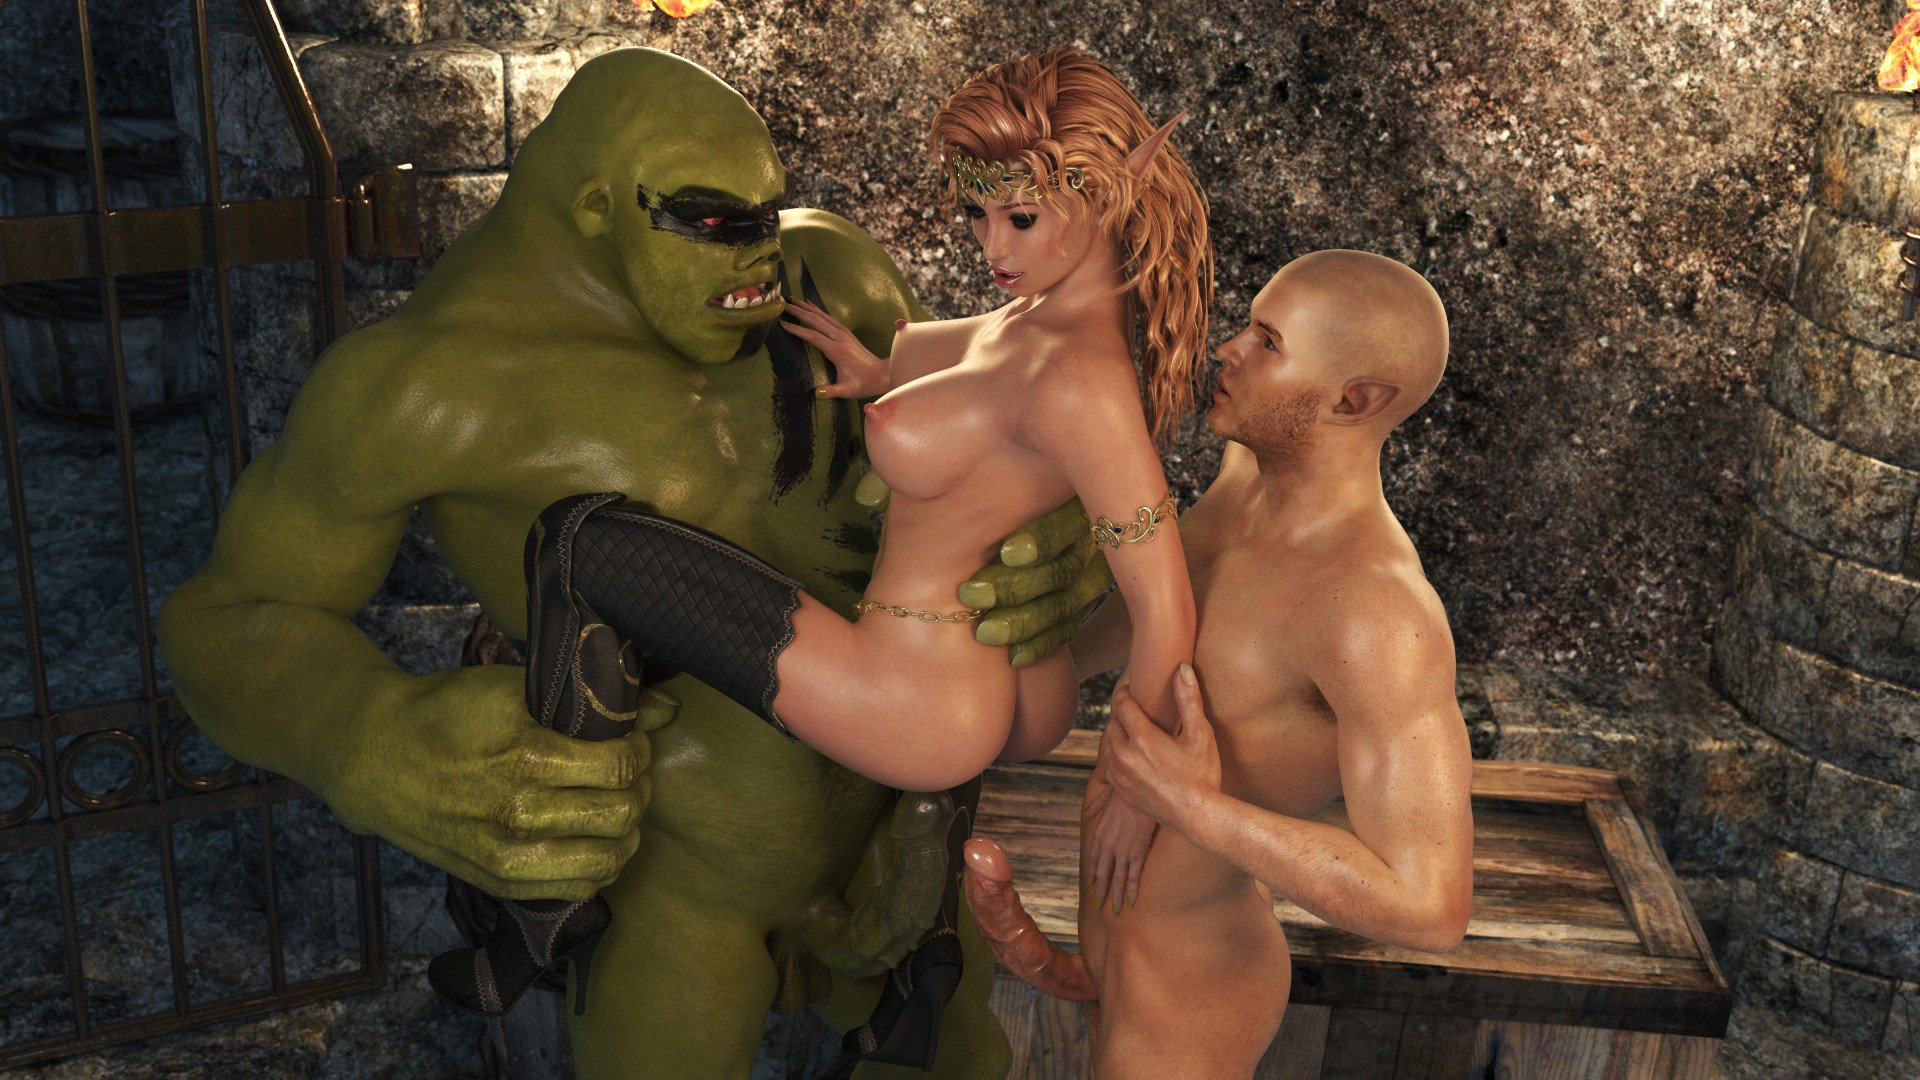 Monster kissing sex pics 12